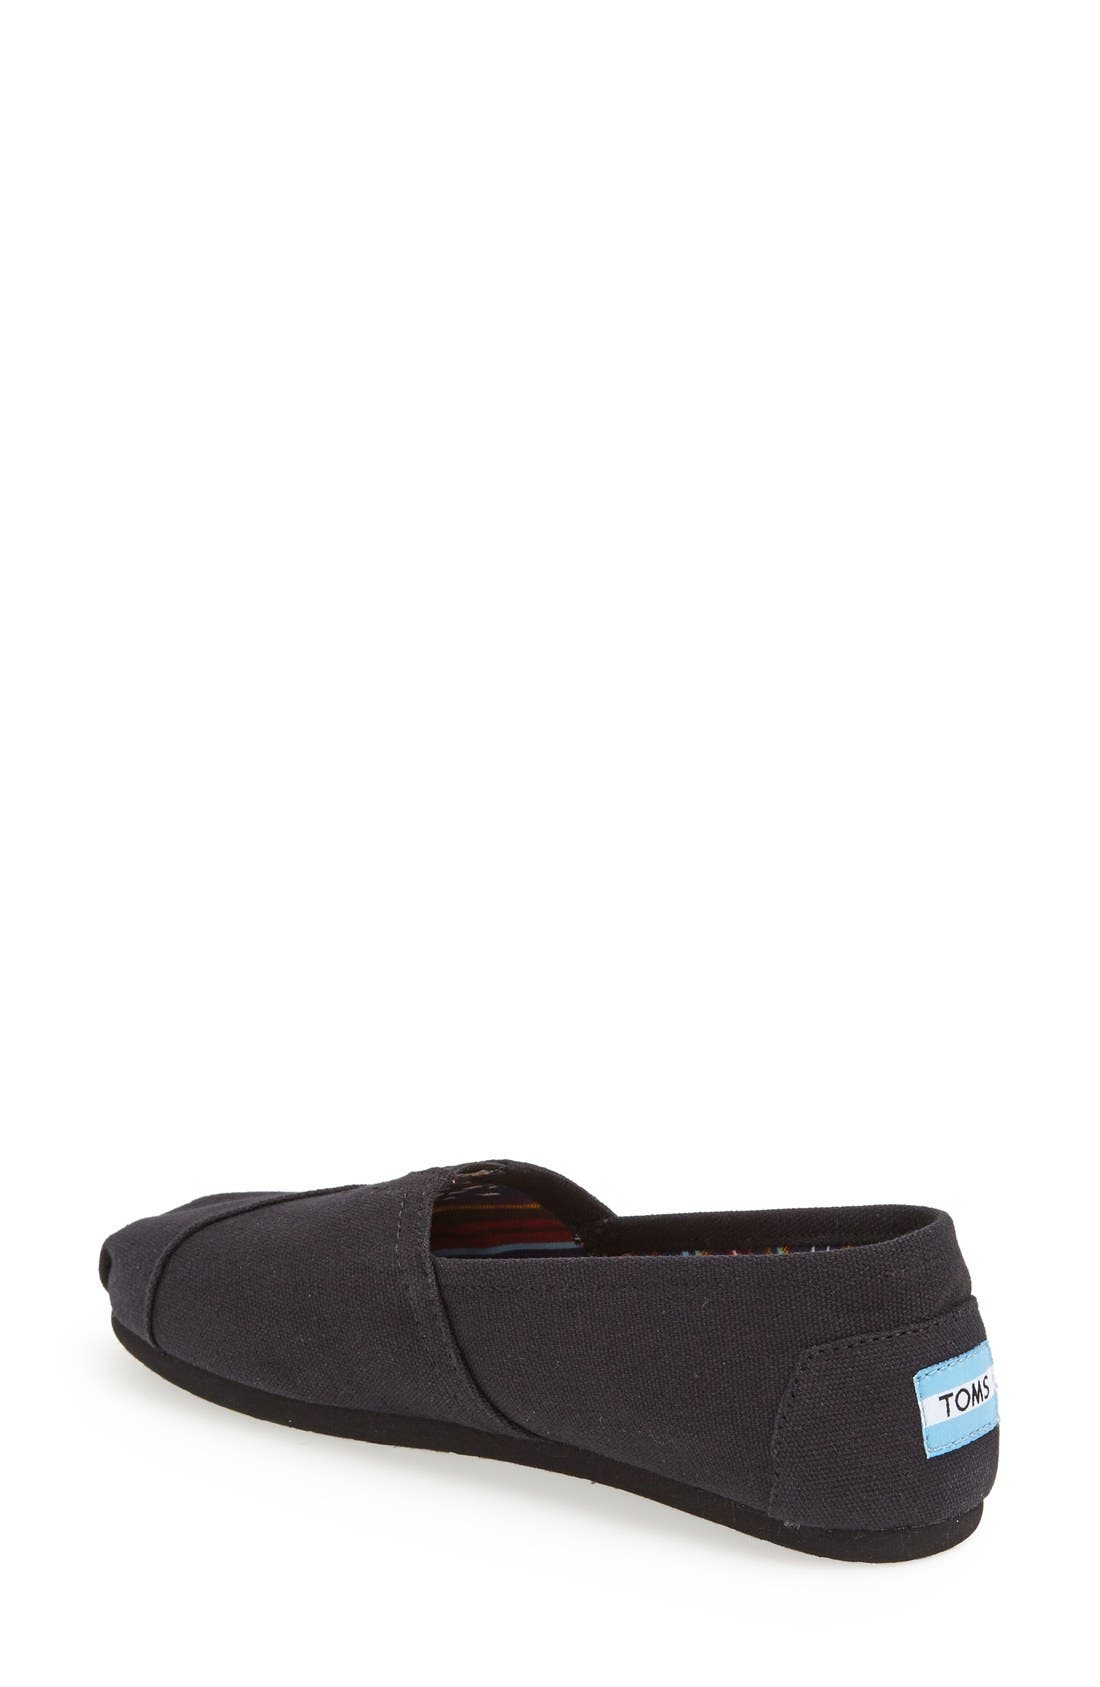 Alternate Image 2  - TOMS Classic - Alpargata Slip-On (Women)